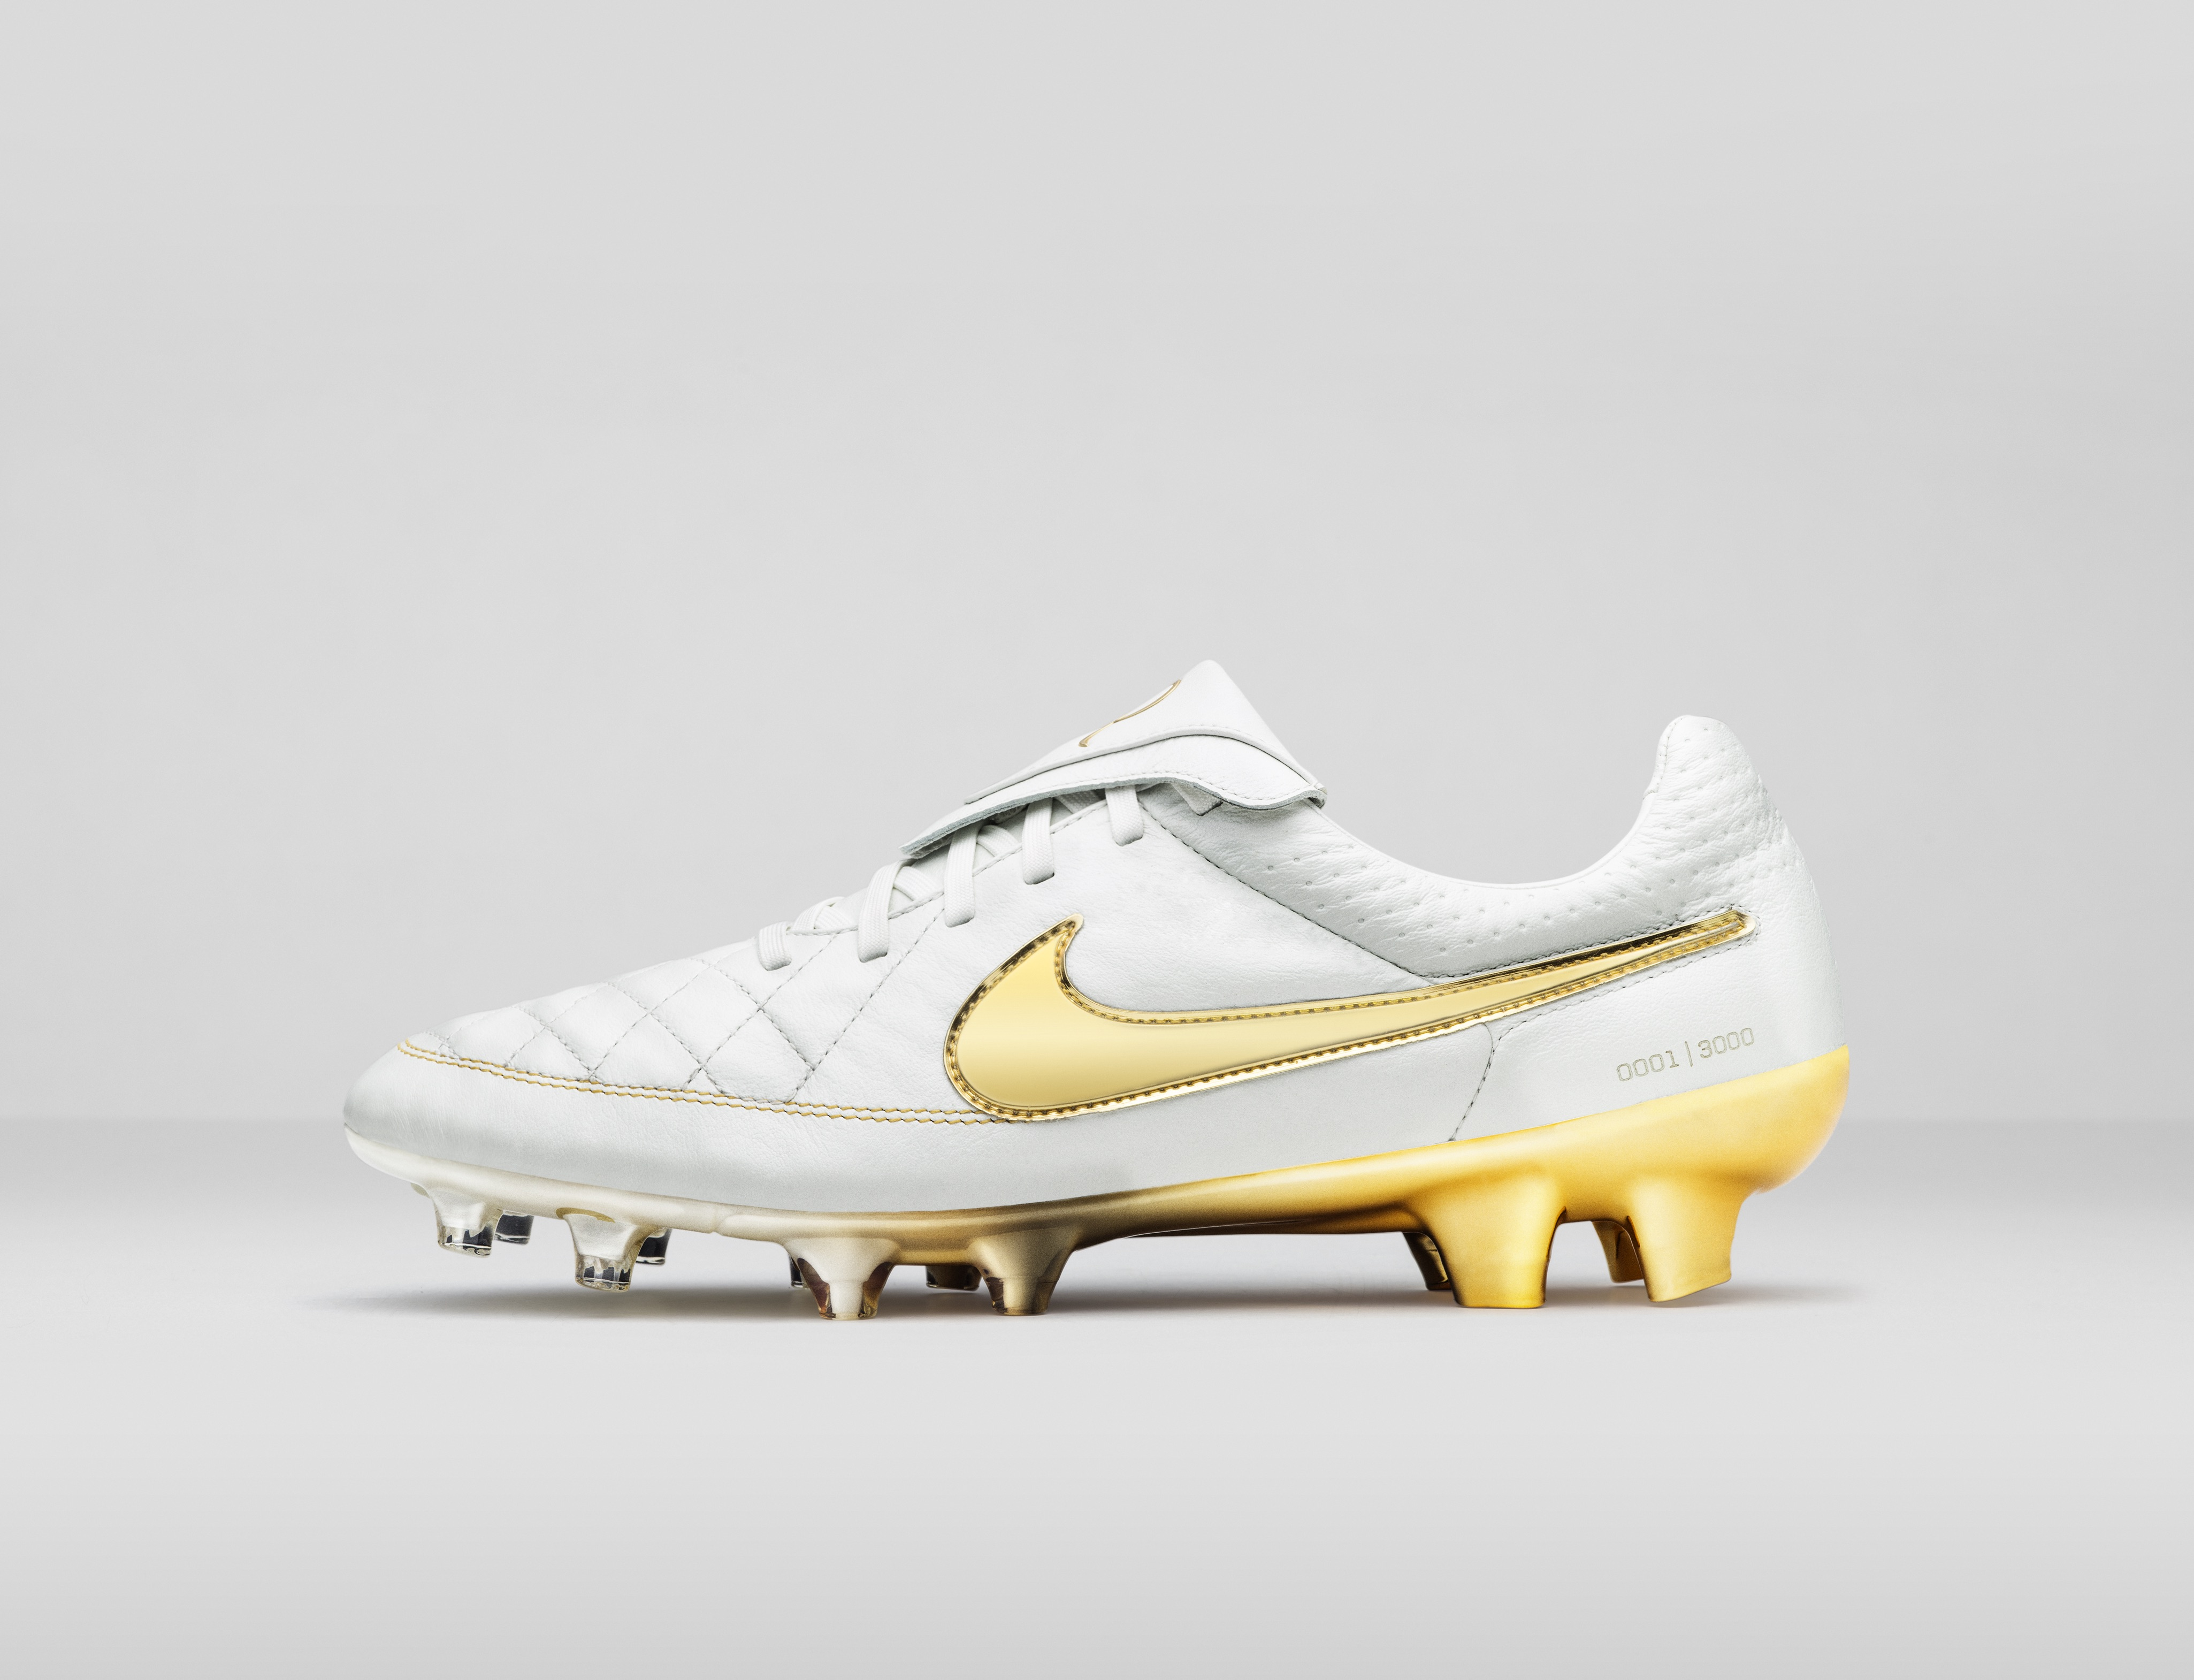 2878ceef1 ireland original nike legend r10 boots 2005 fa57d 7ea93  where can i buy nike  ronaldinho shoes 51895 f8936